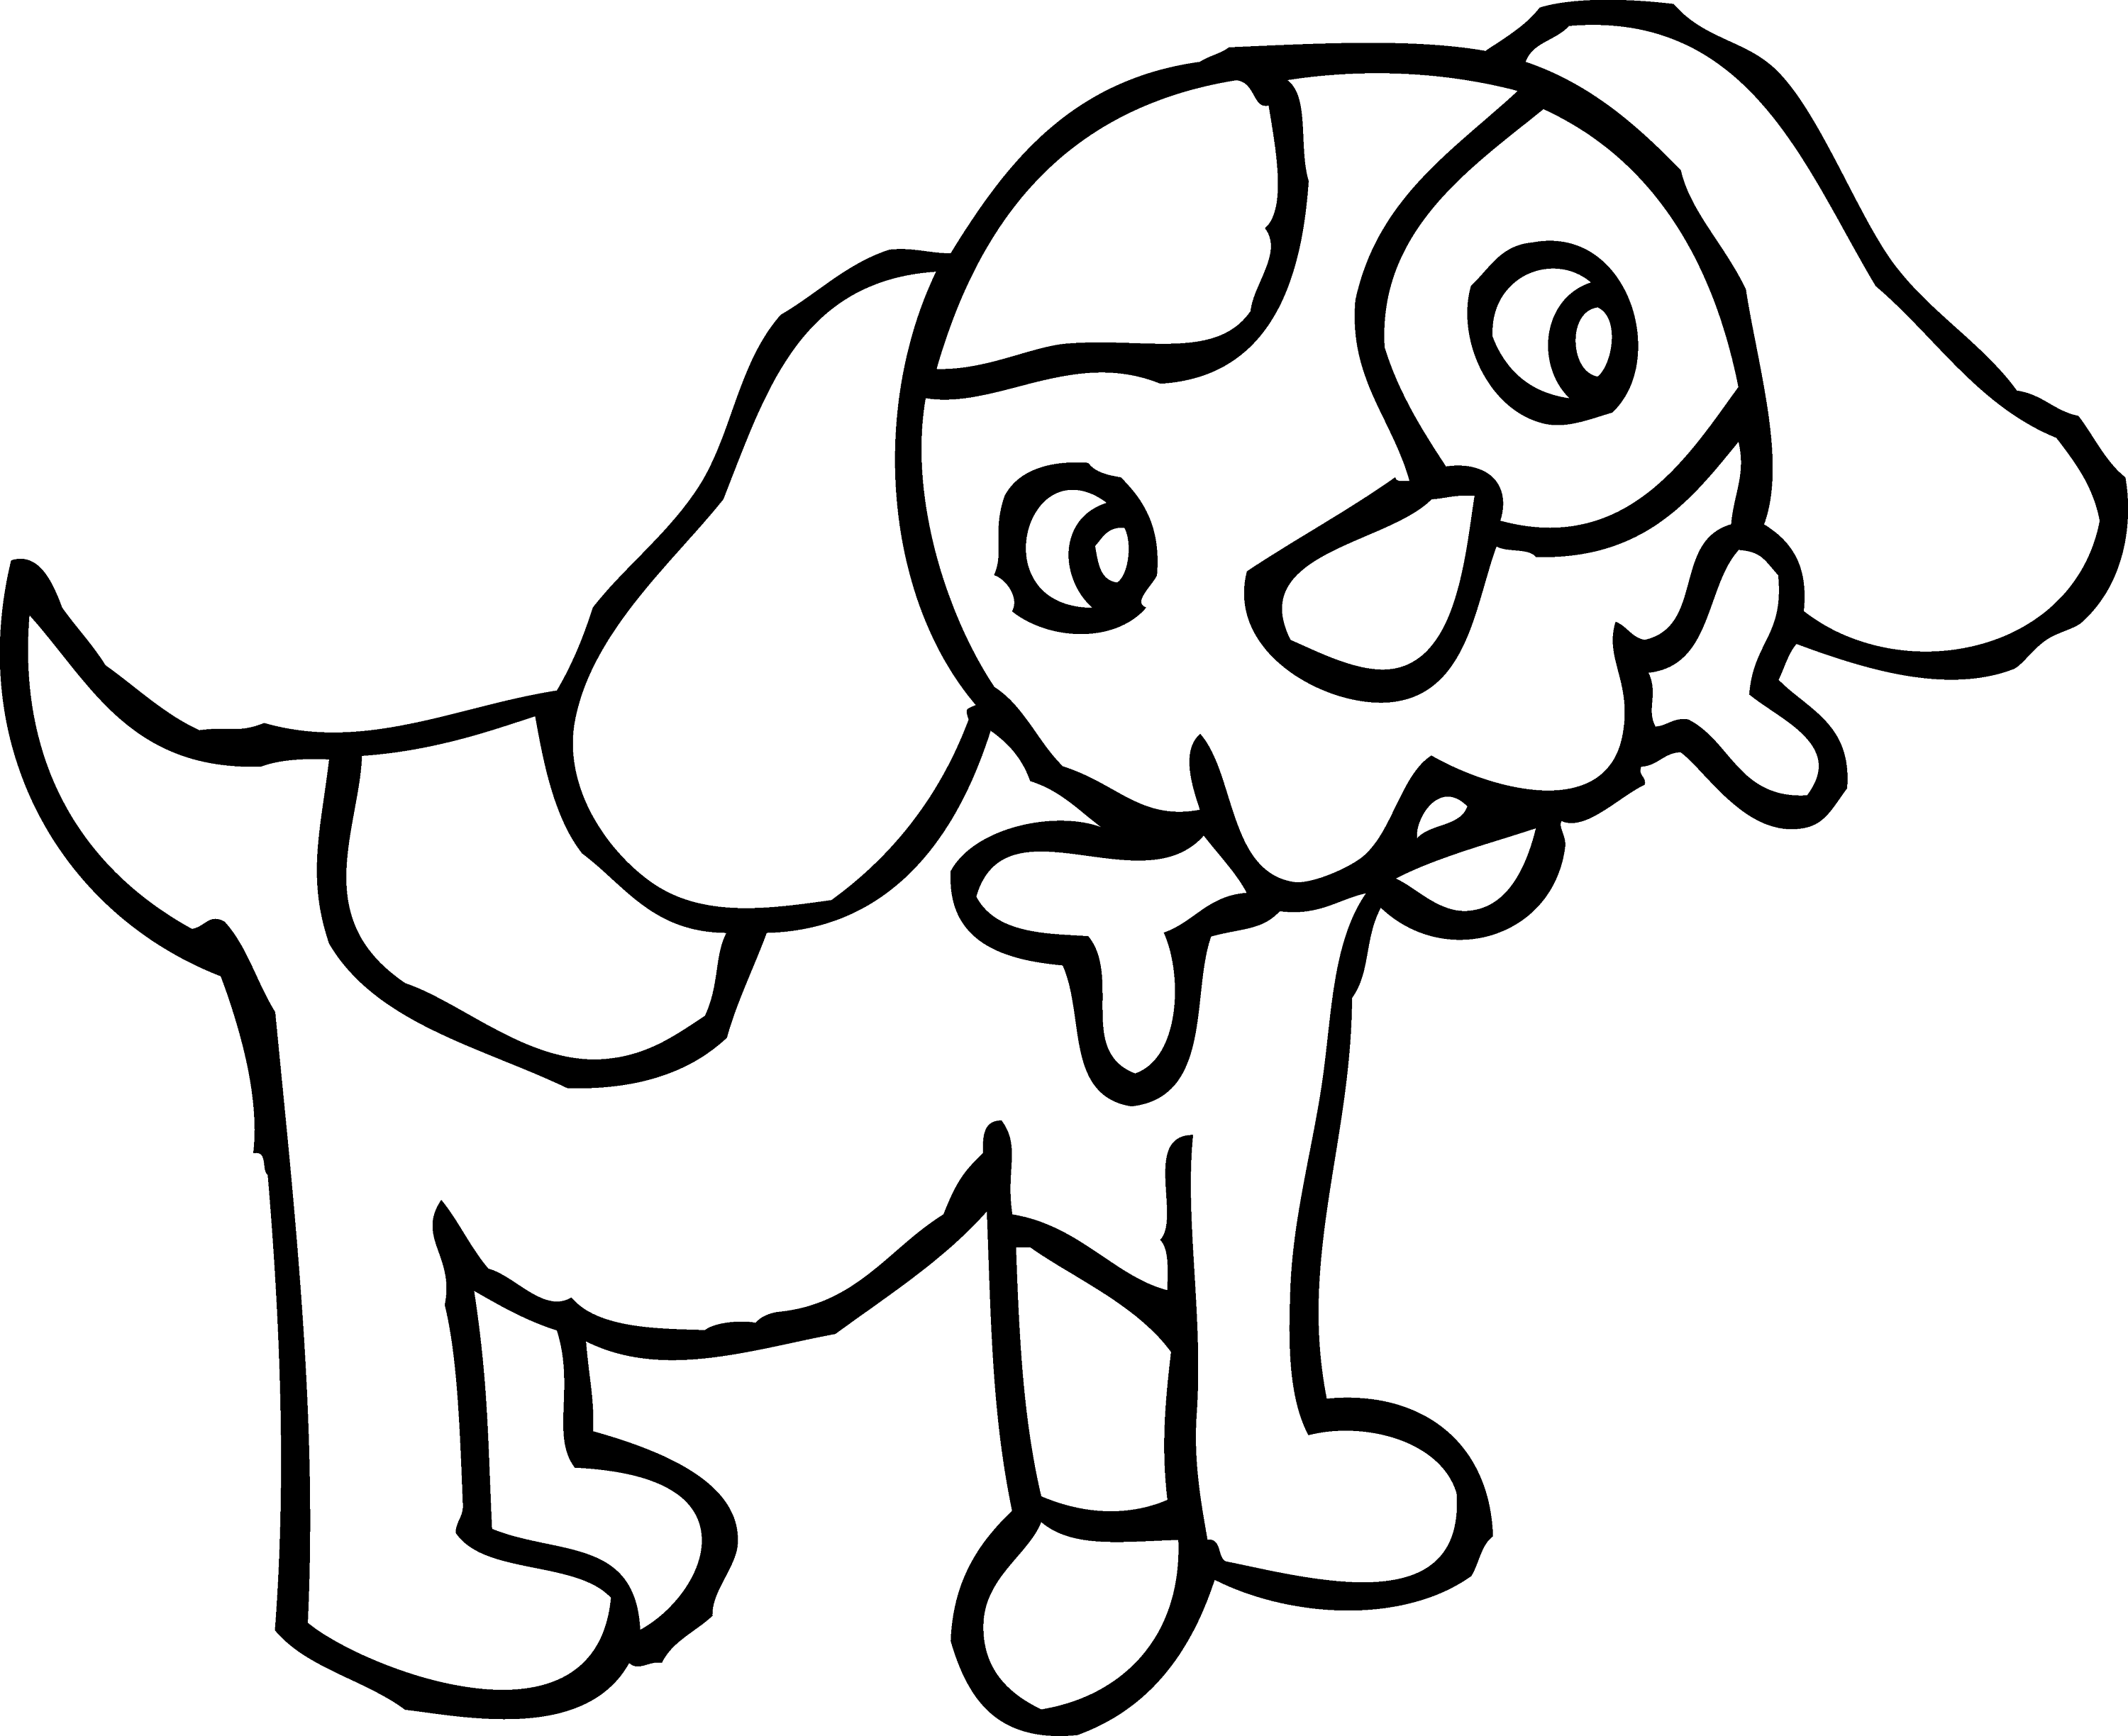 Dog Bone Coloring Pages Coloring Page of Dog With Bone